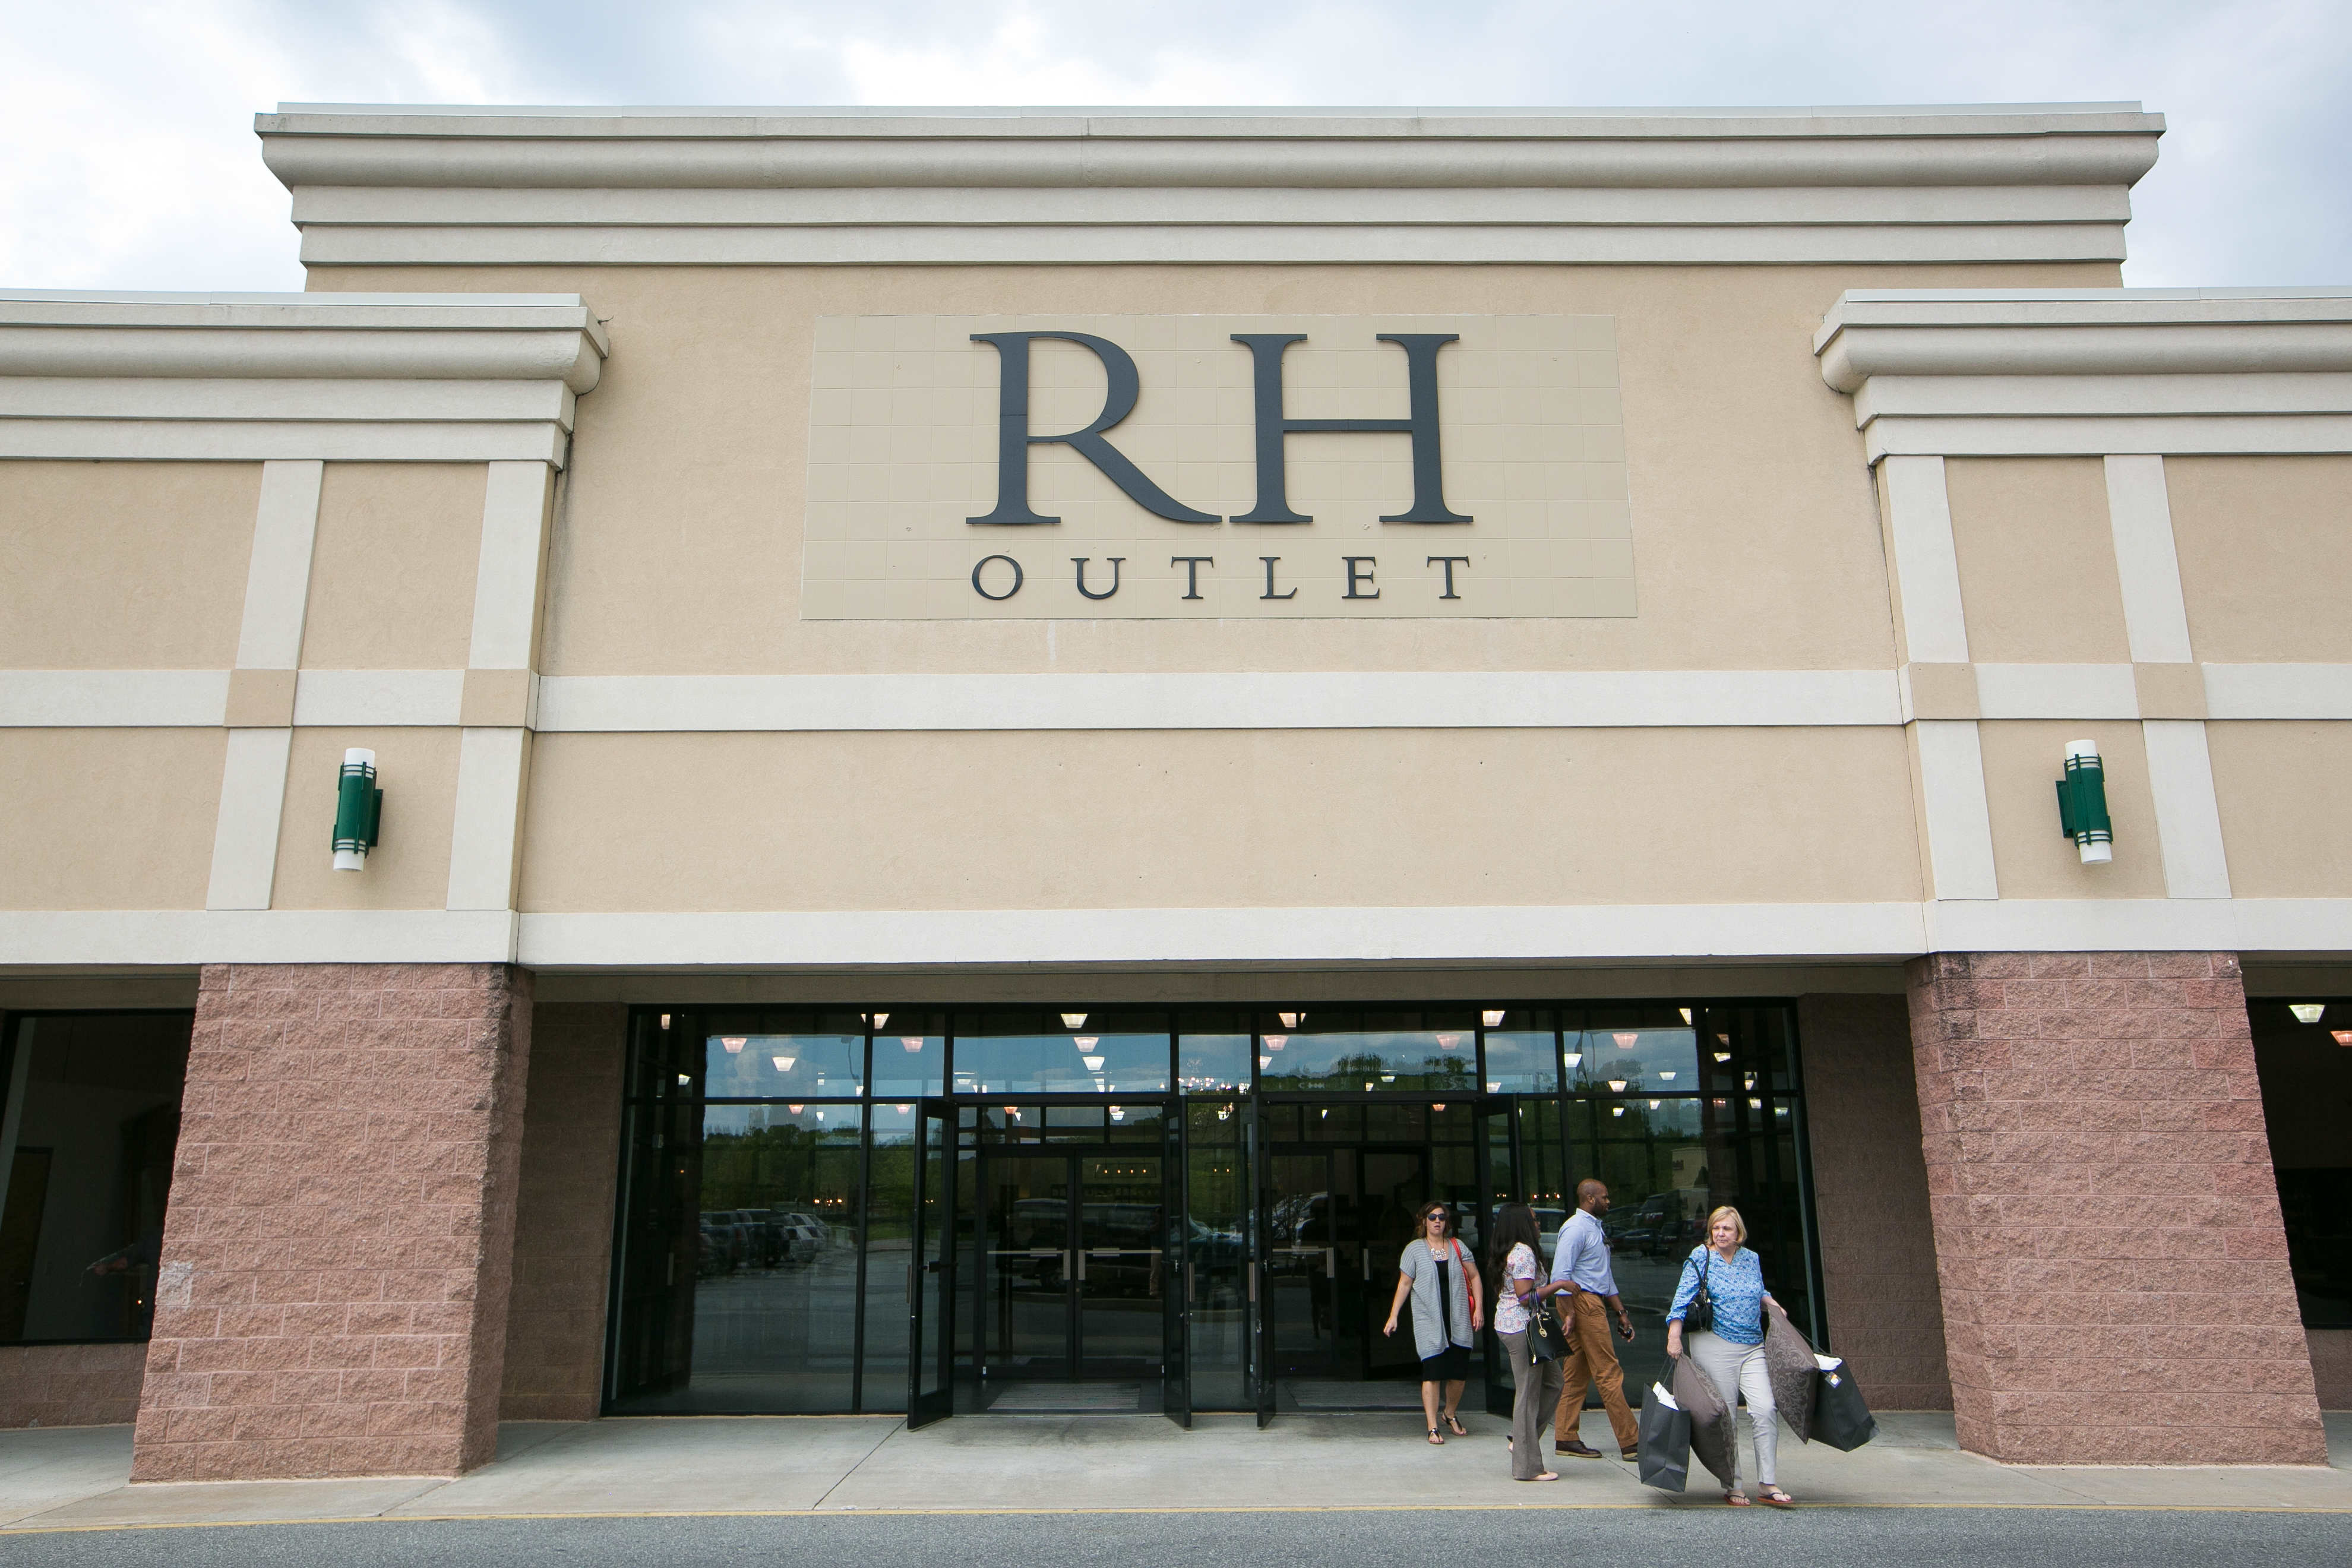 restoration hardware outlet opens in christiana raymour flanigan rh delawareonline com kitchen store wilmington de kitchen store wilmington de